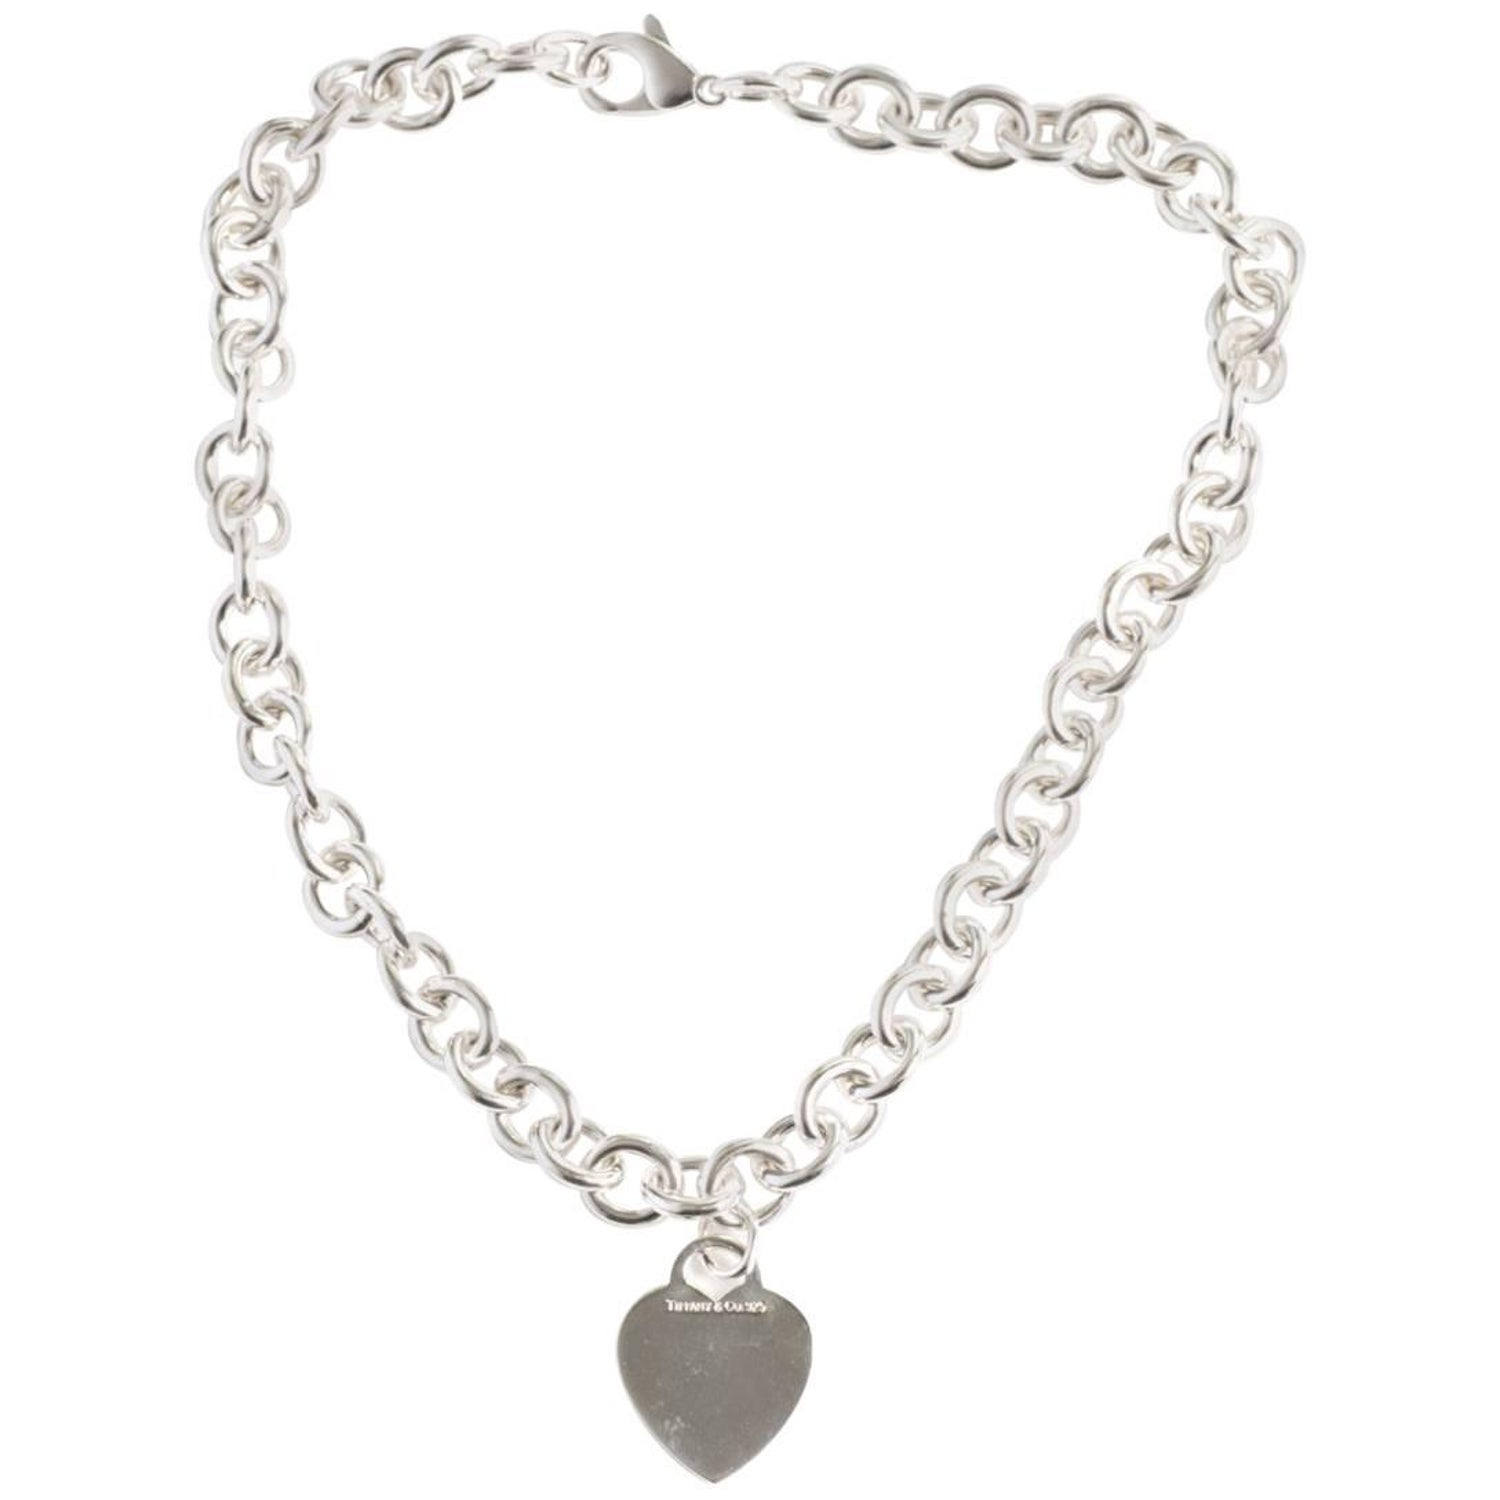 74862a3eb Tiffany and Co. Heart Charm Sterling Silver Choker Necklace at 1stdibs